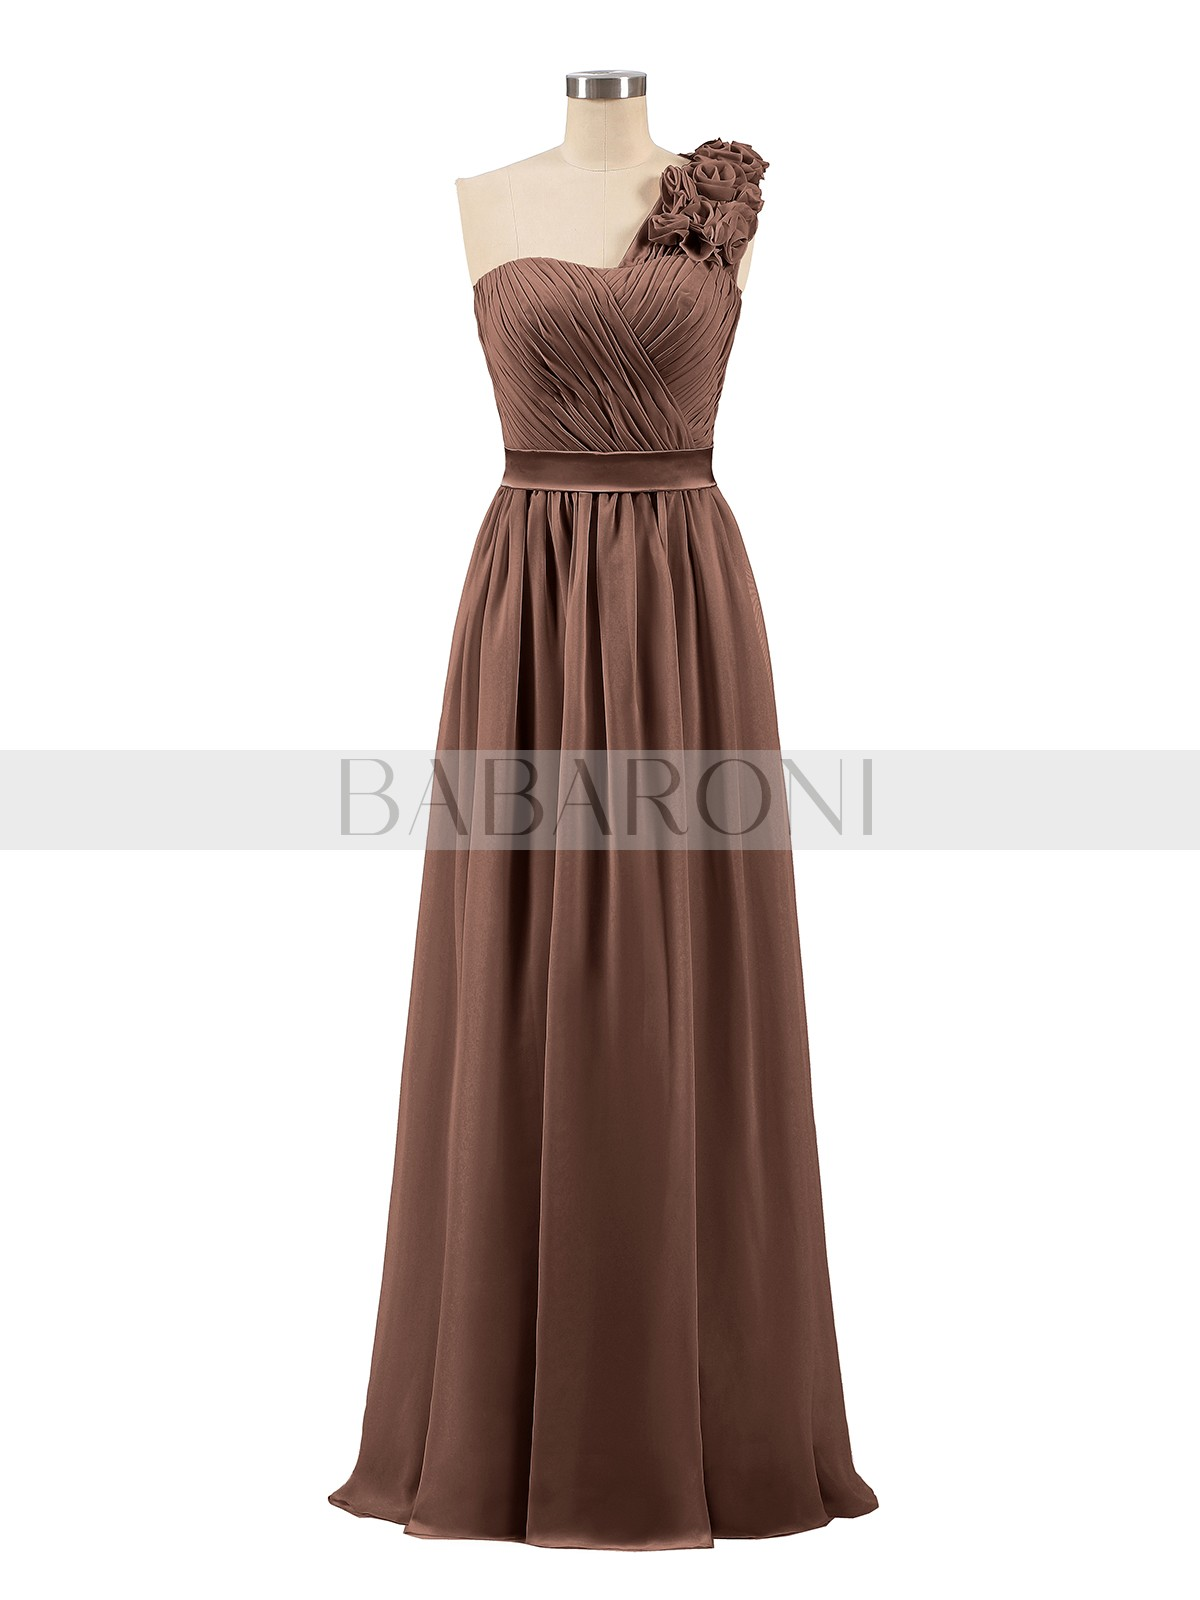 ecb0fb586fc7 Chocolate Mirabelle One Shoulder Chiffon Dress with Flowers Strap ...